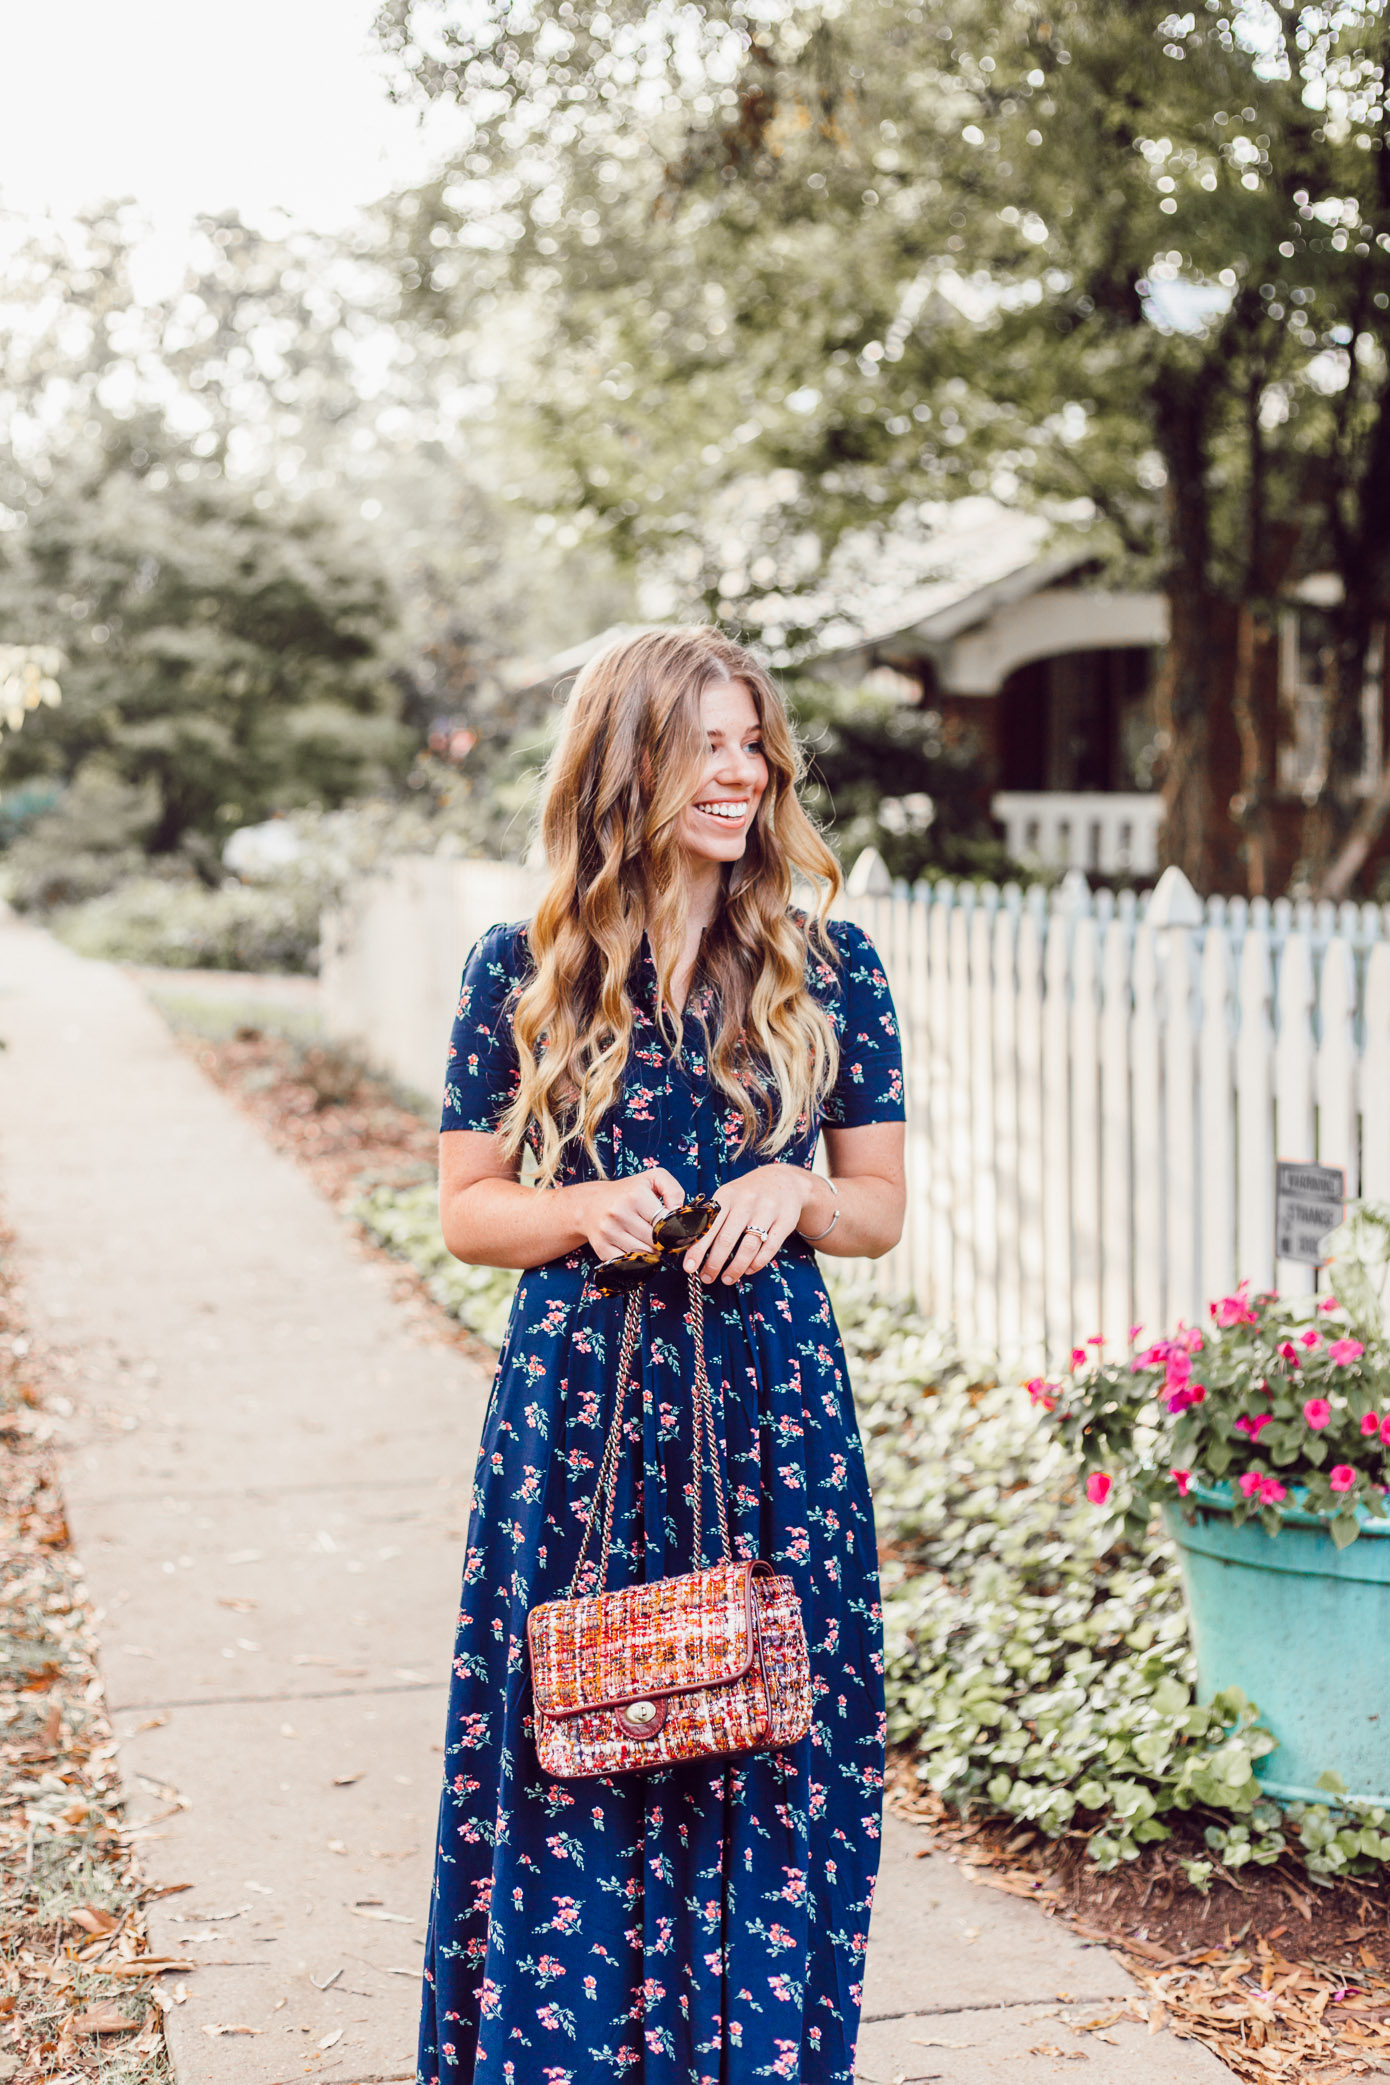 Savoring Fall | Floral Midi Dress for Fall | Fall Midi Dresses featured on Louella Reese Life & Style Blog